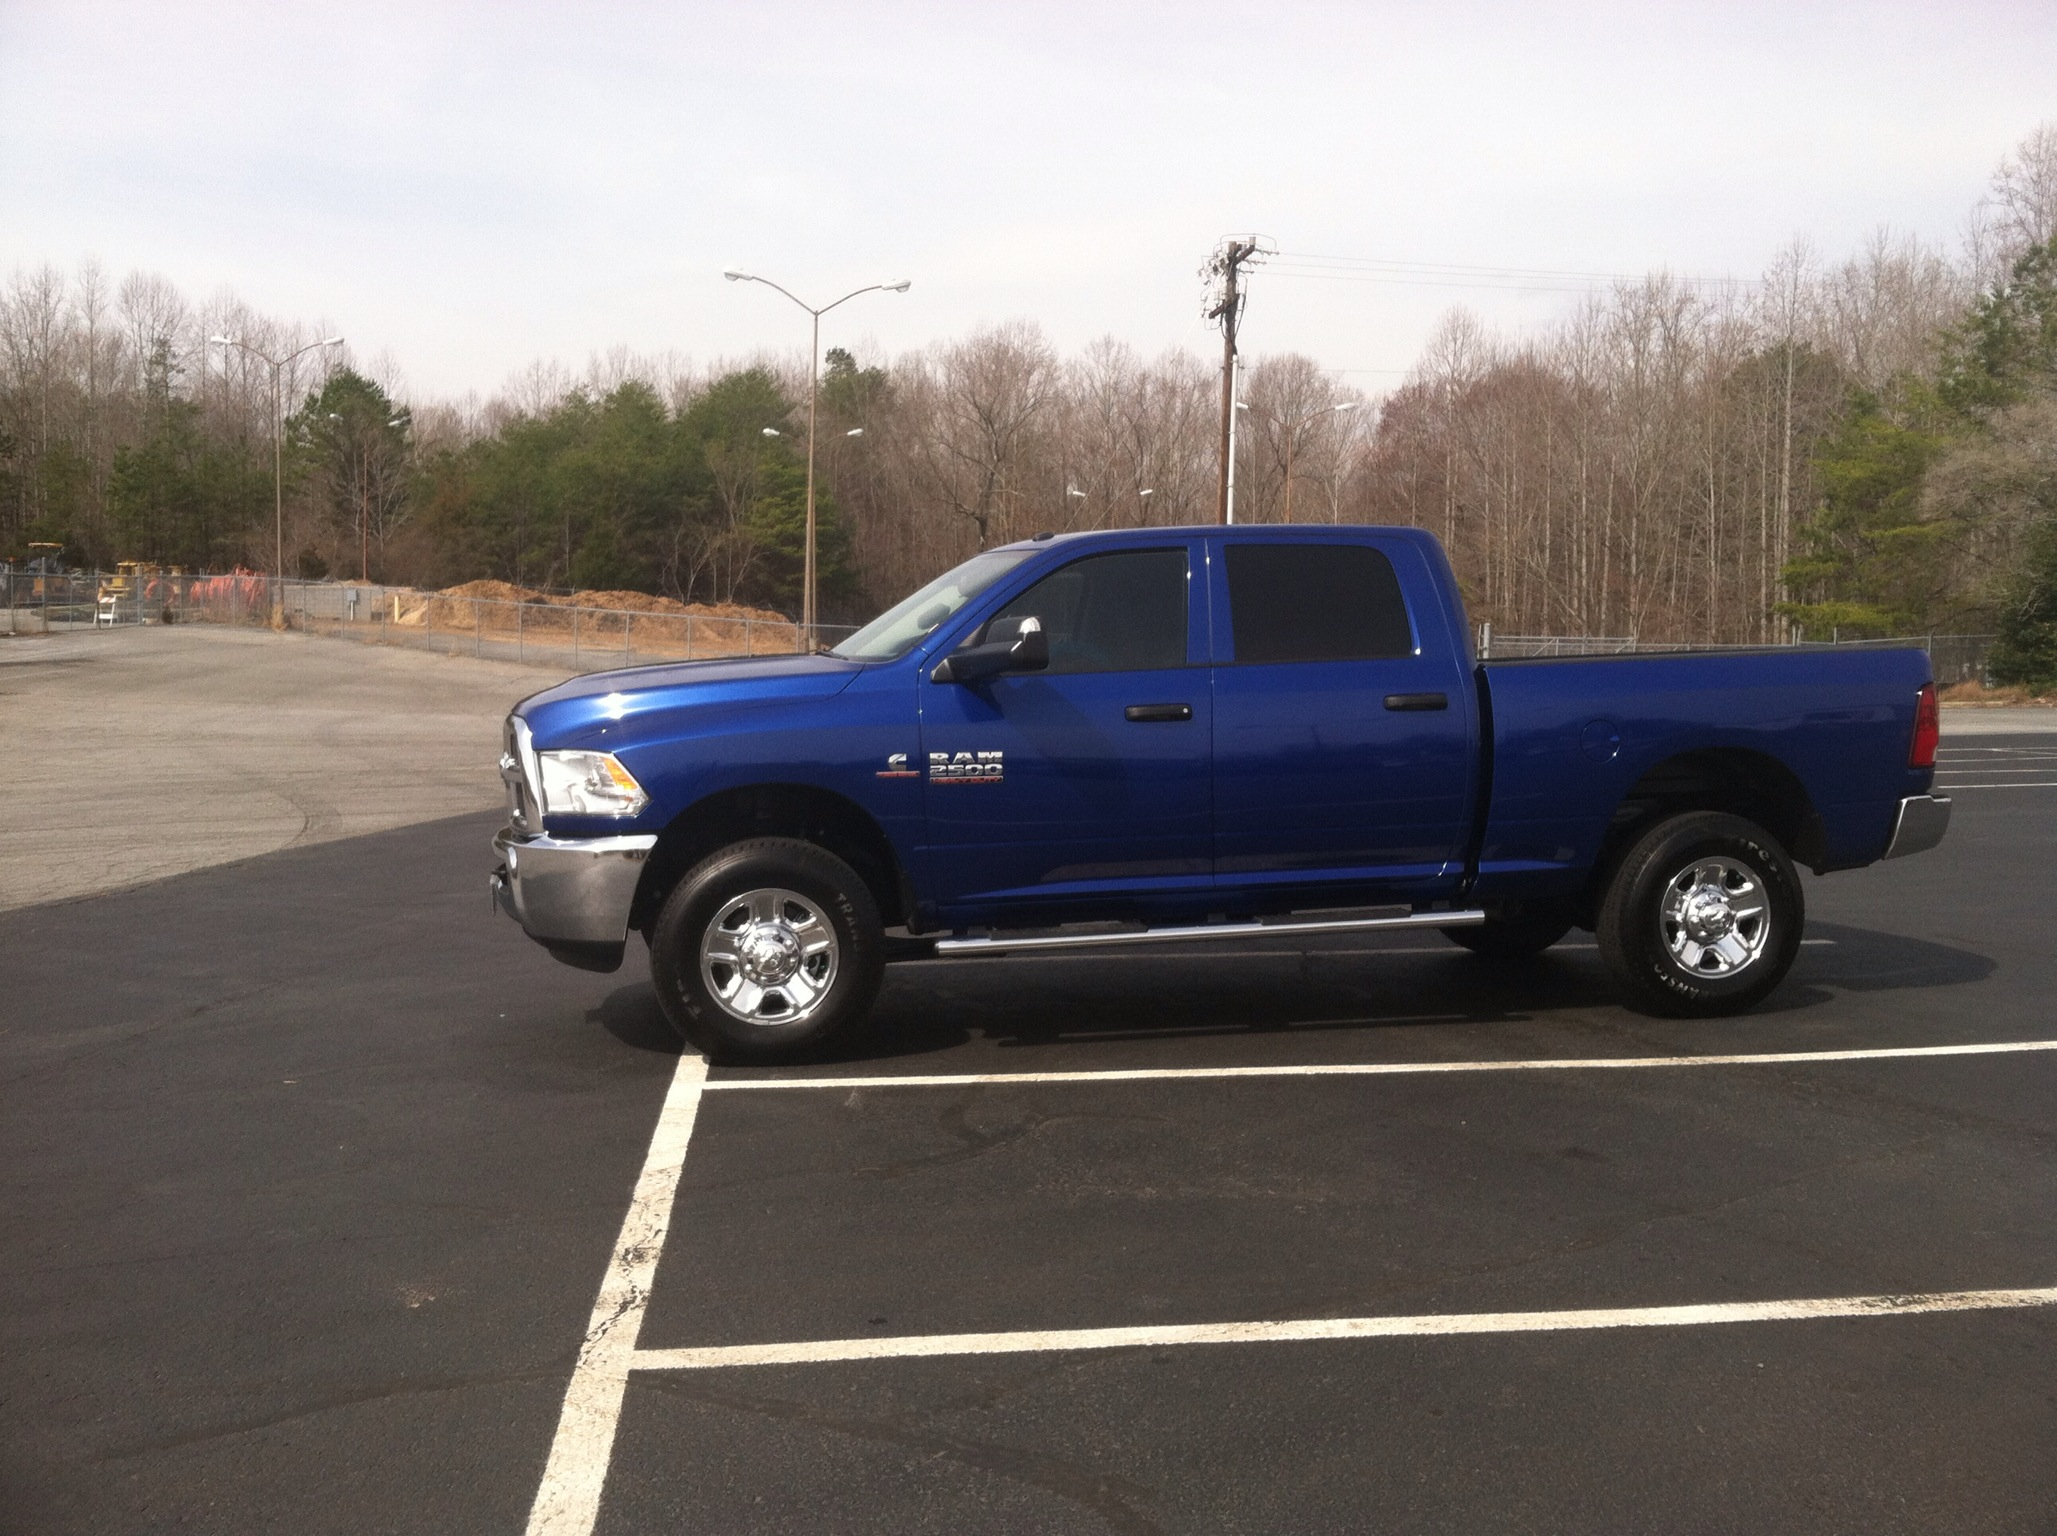 Old Dodge Ram >> Picked up a 2014 2500 Ram CCSB 4x4 Bluestreak pearl - Dodge Cummins Diesel Forum